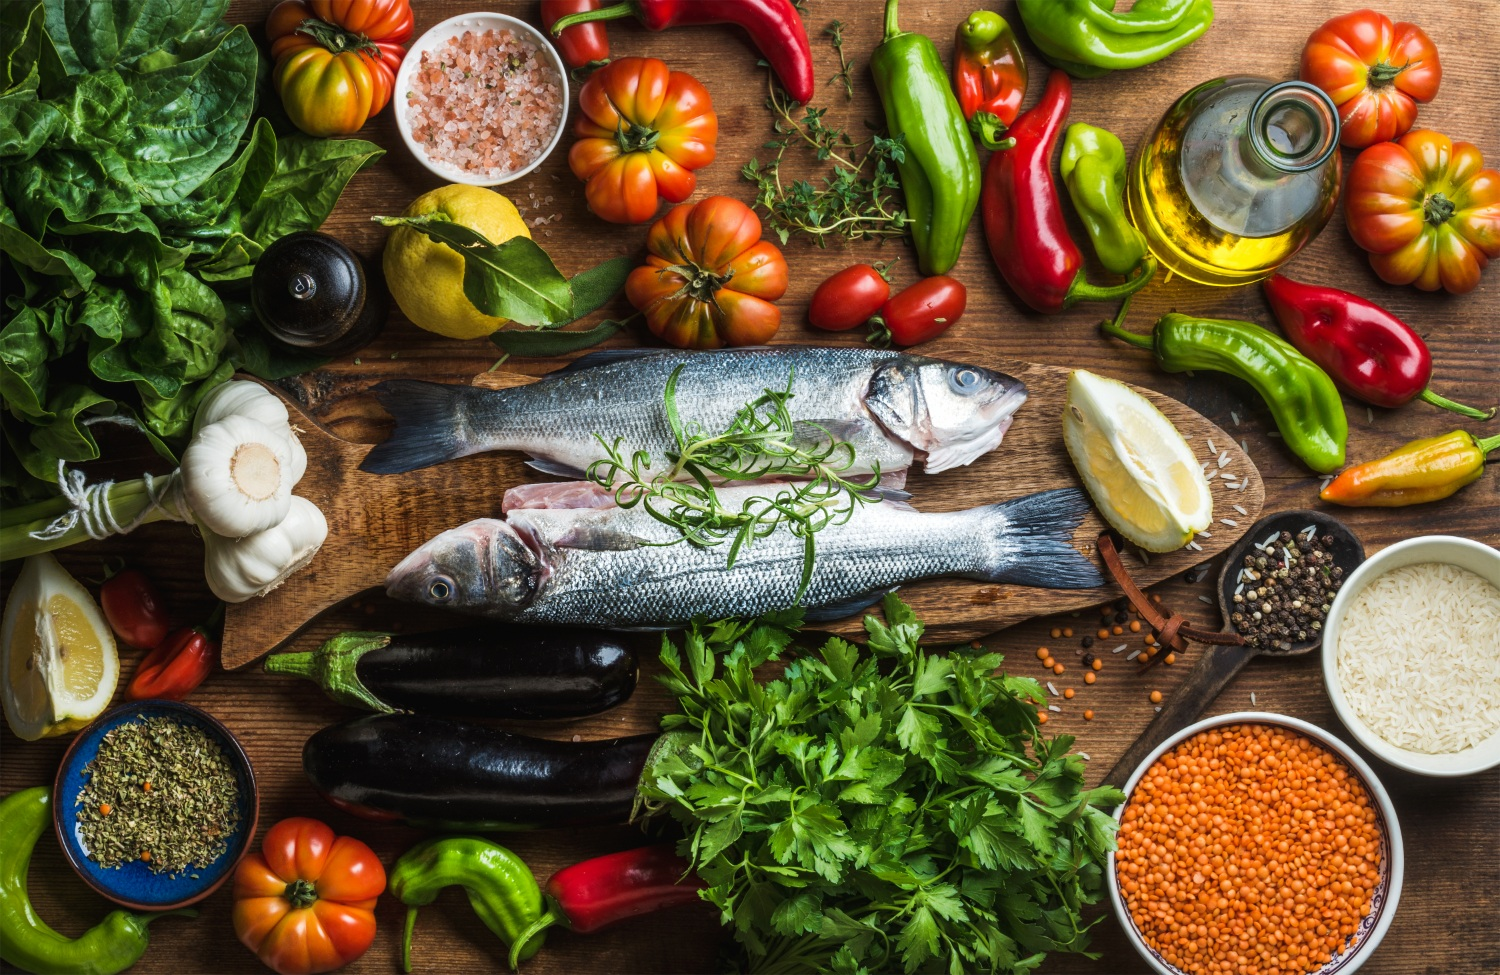 Healthy eating will help you lose and maintain new weight   Shutterstock